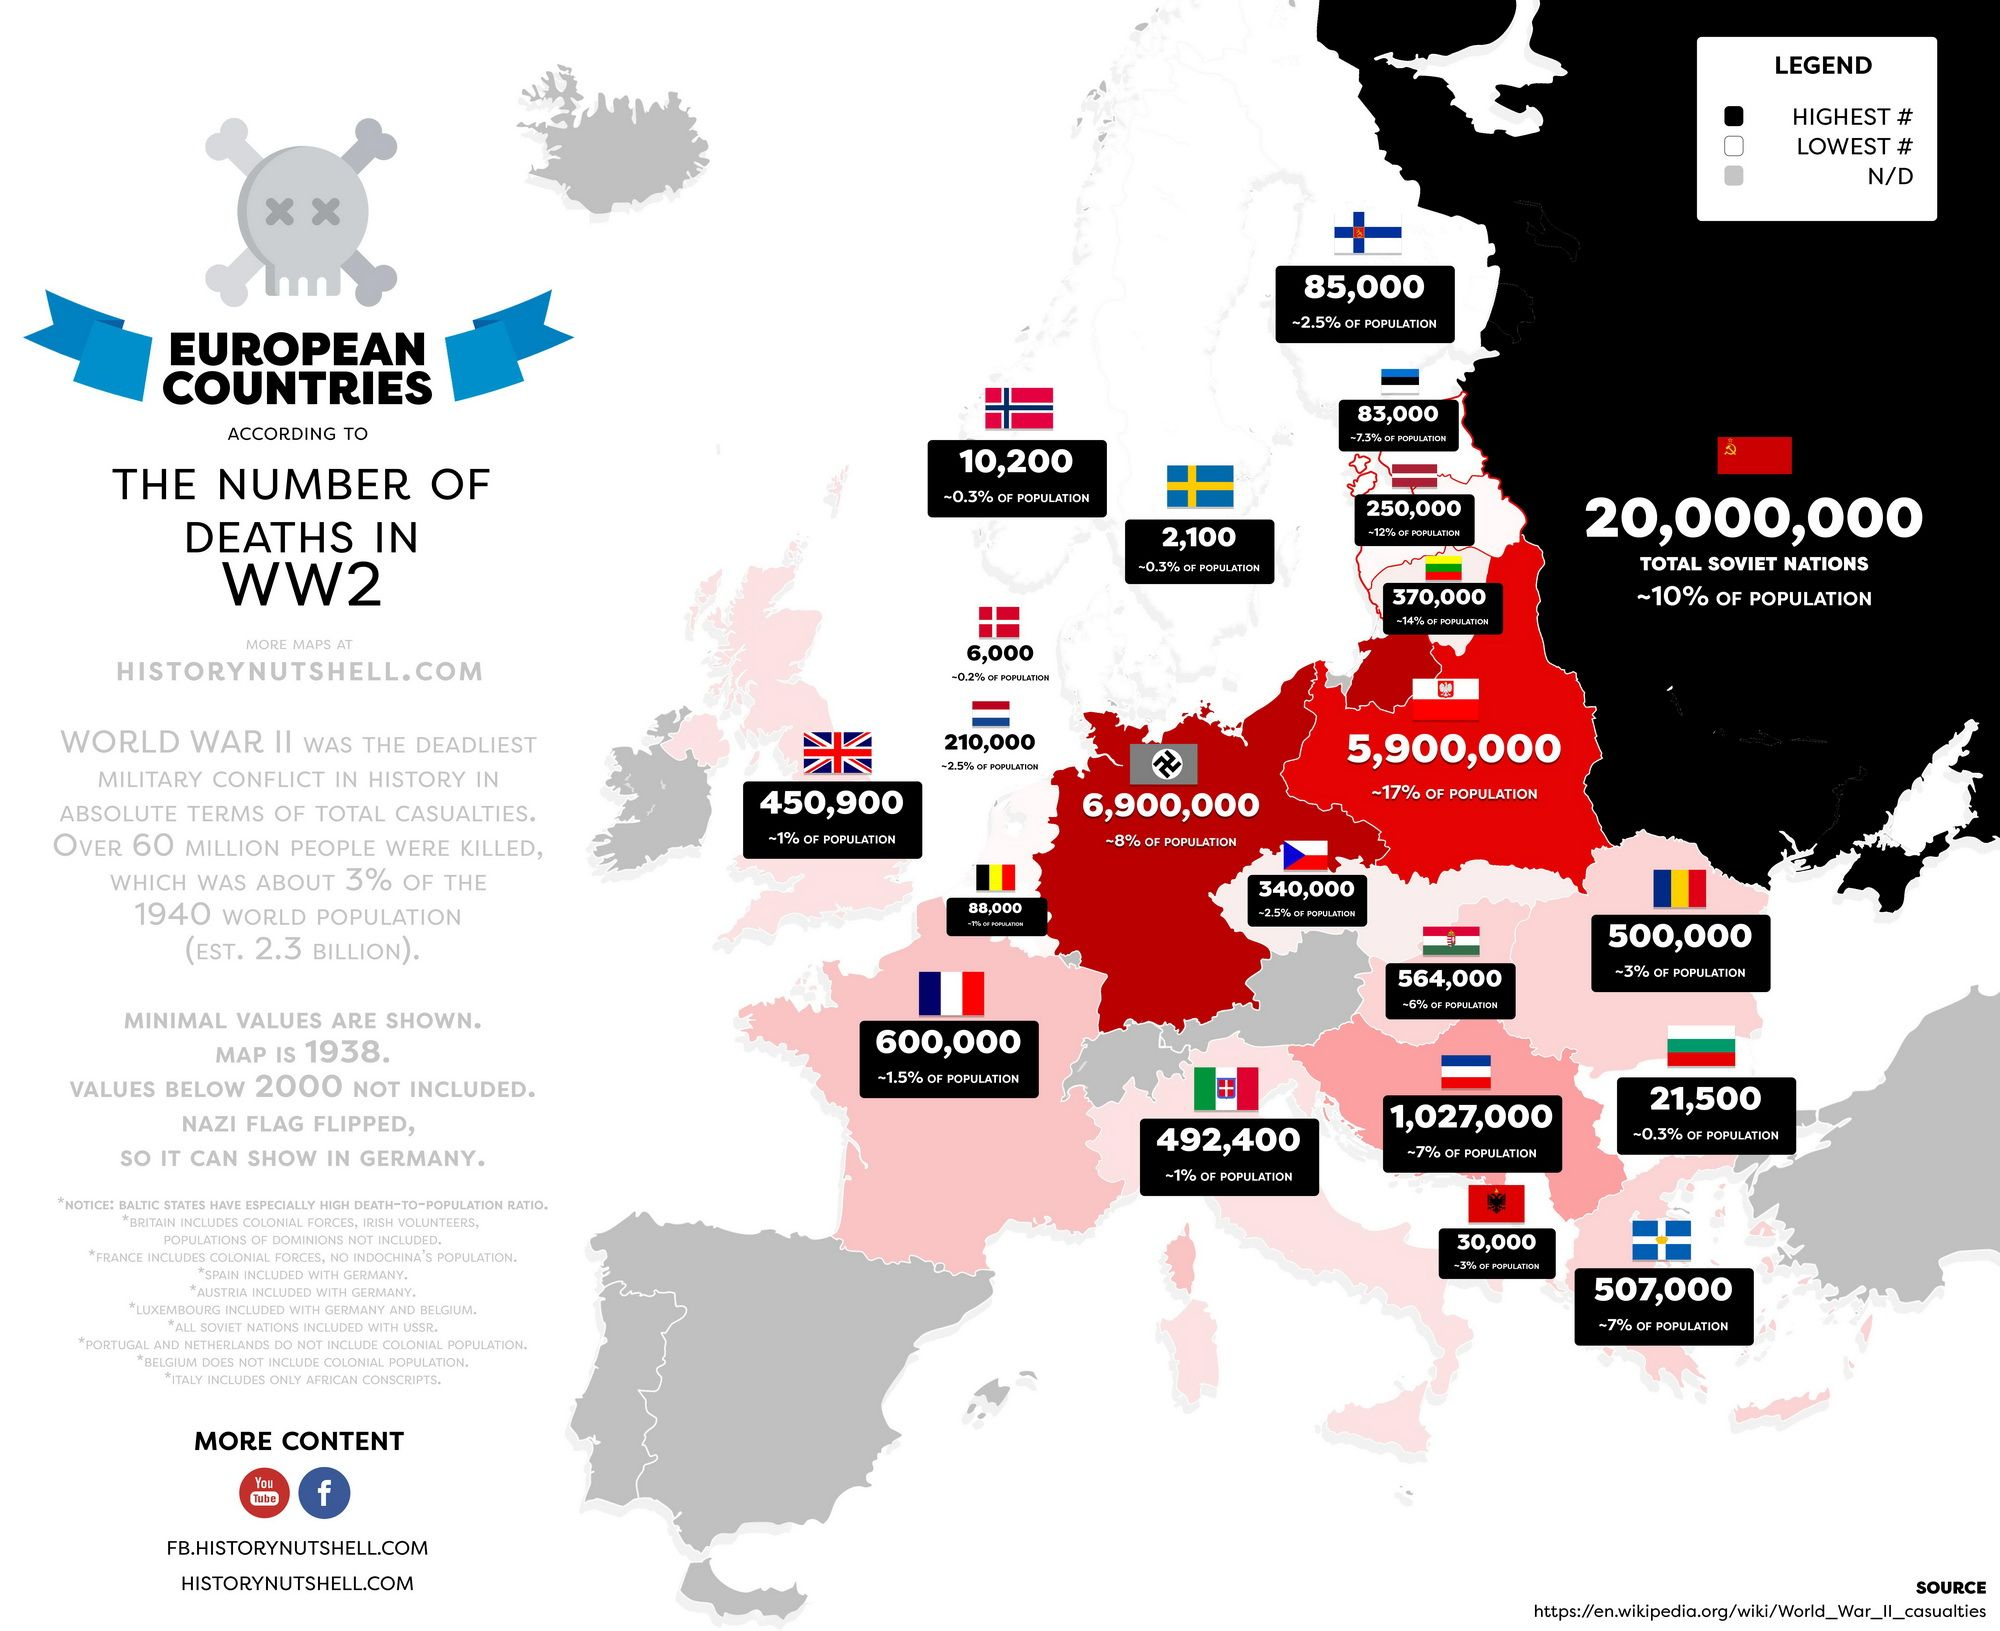 Map of Casualties in Europe